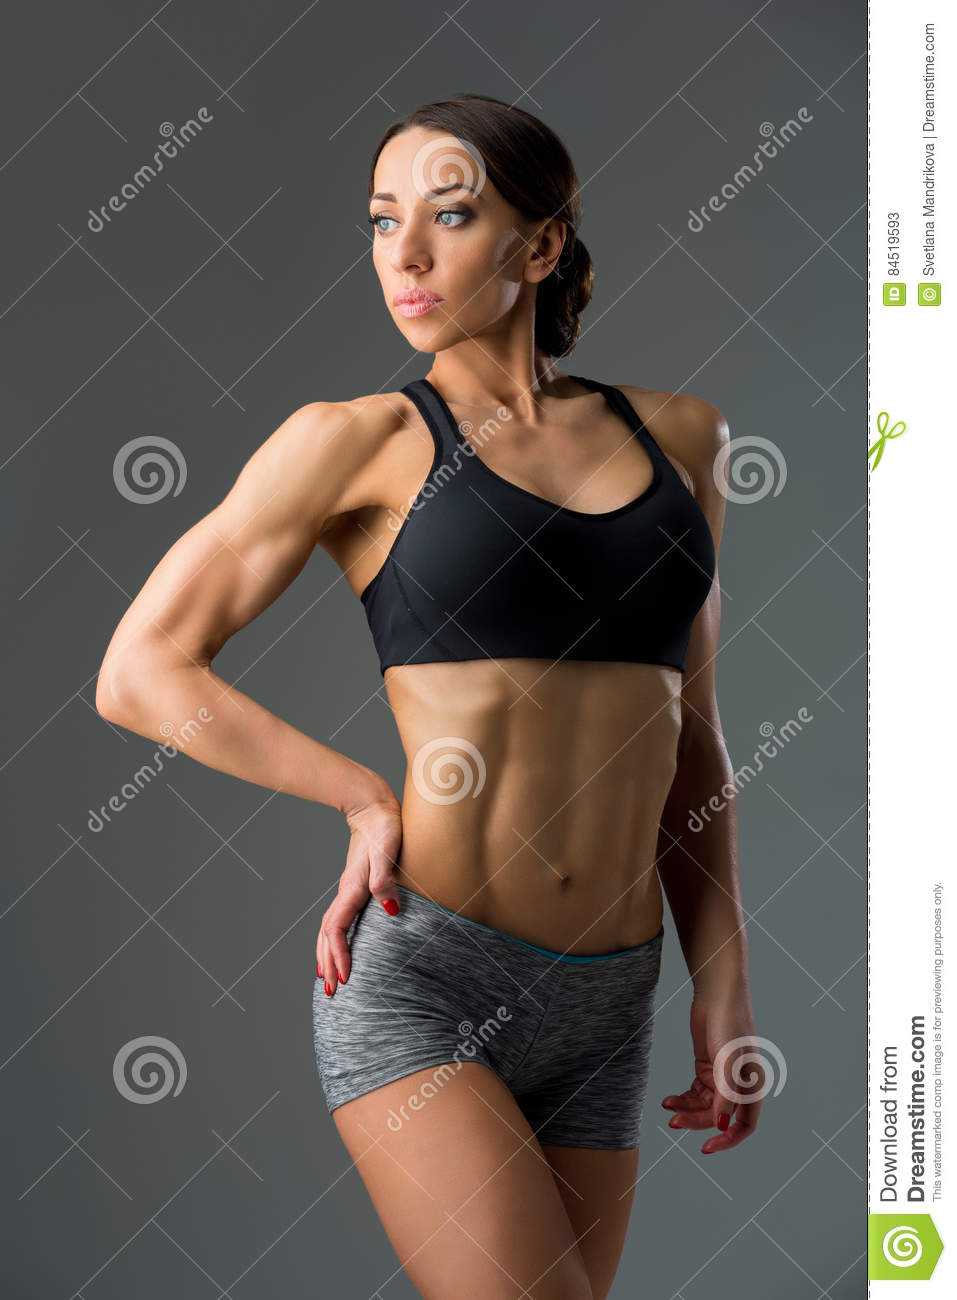 Beautiful Fit Girl In Sport Bra And Shorts Stock Image - Image of ... 5f5288921